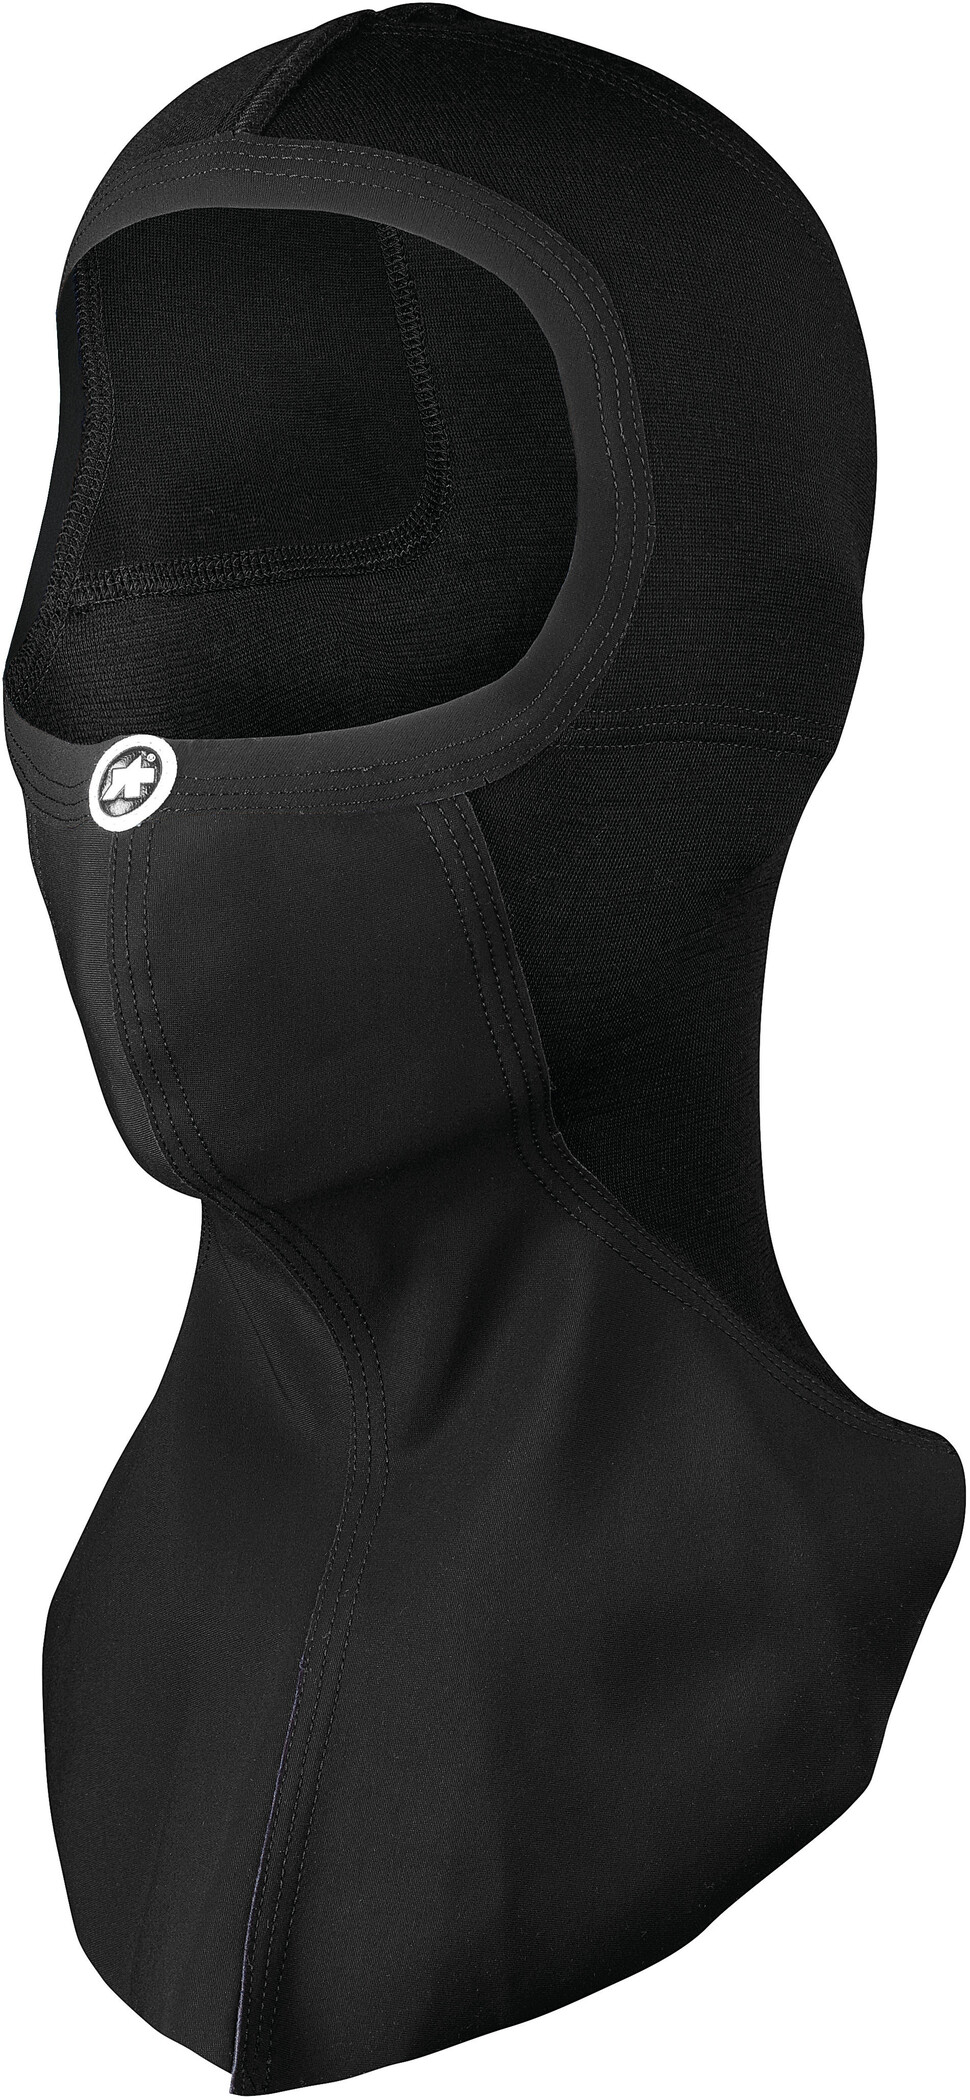 assos Ultraz Vinterhue, black series (2019) | Headwear